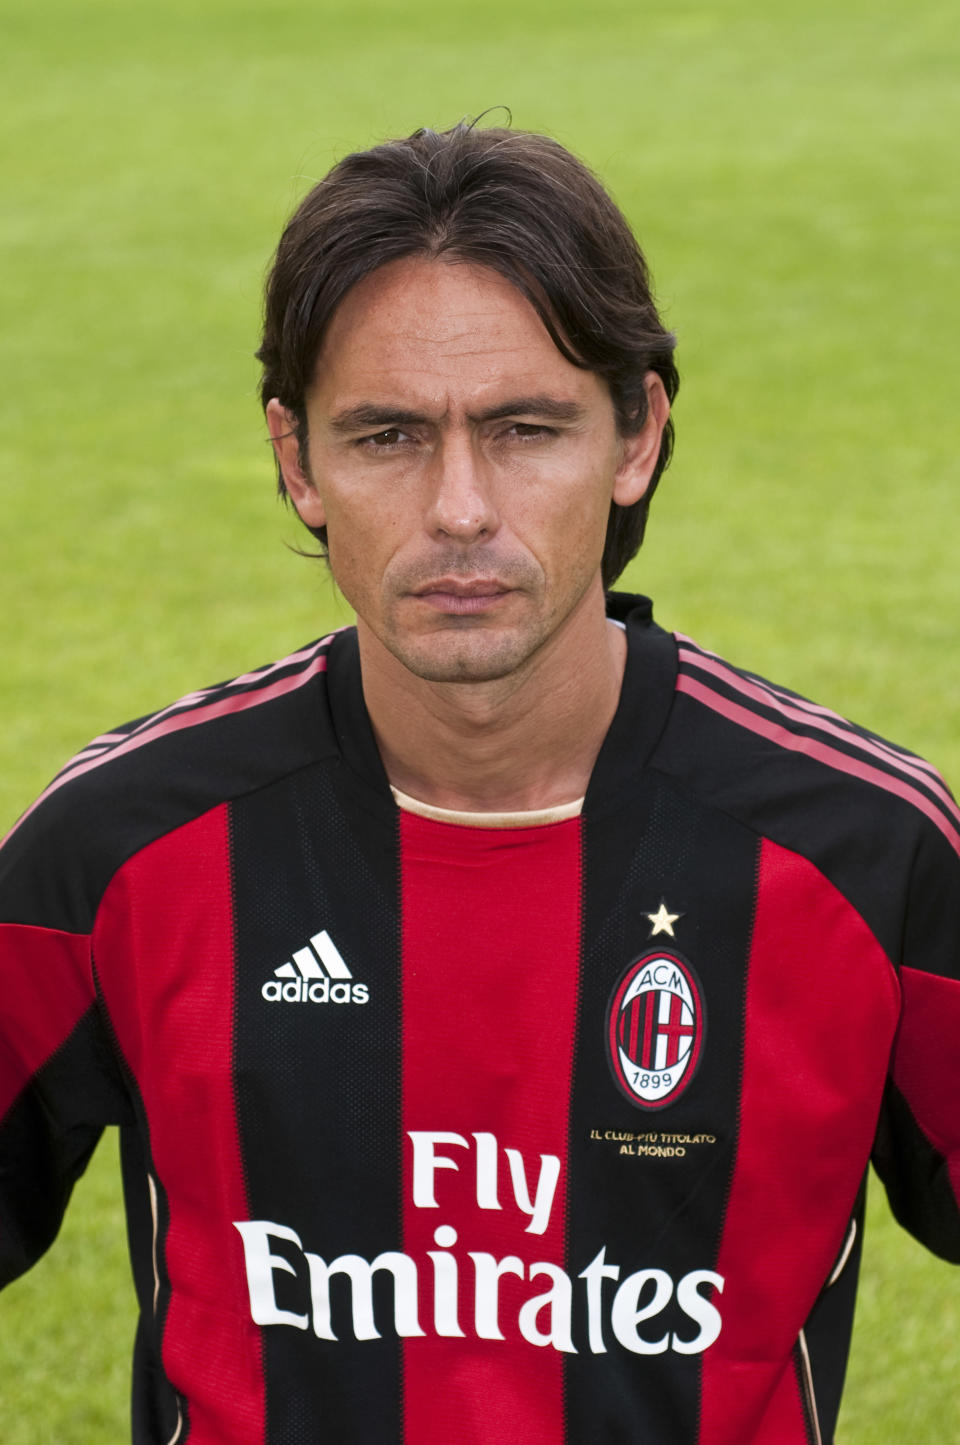 File photo of new AC Milan Filippo Inzaghi (AFP Photo/AIC Photo)